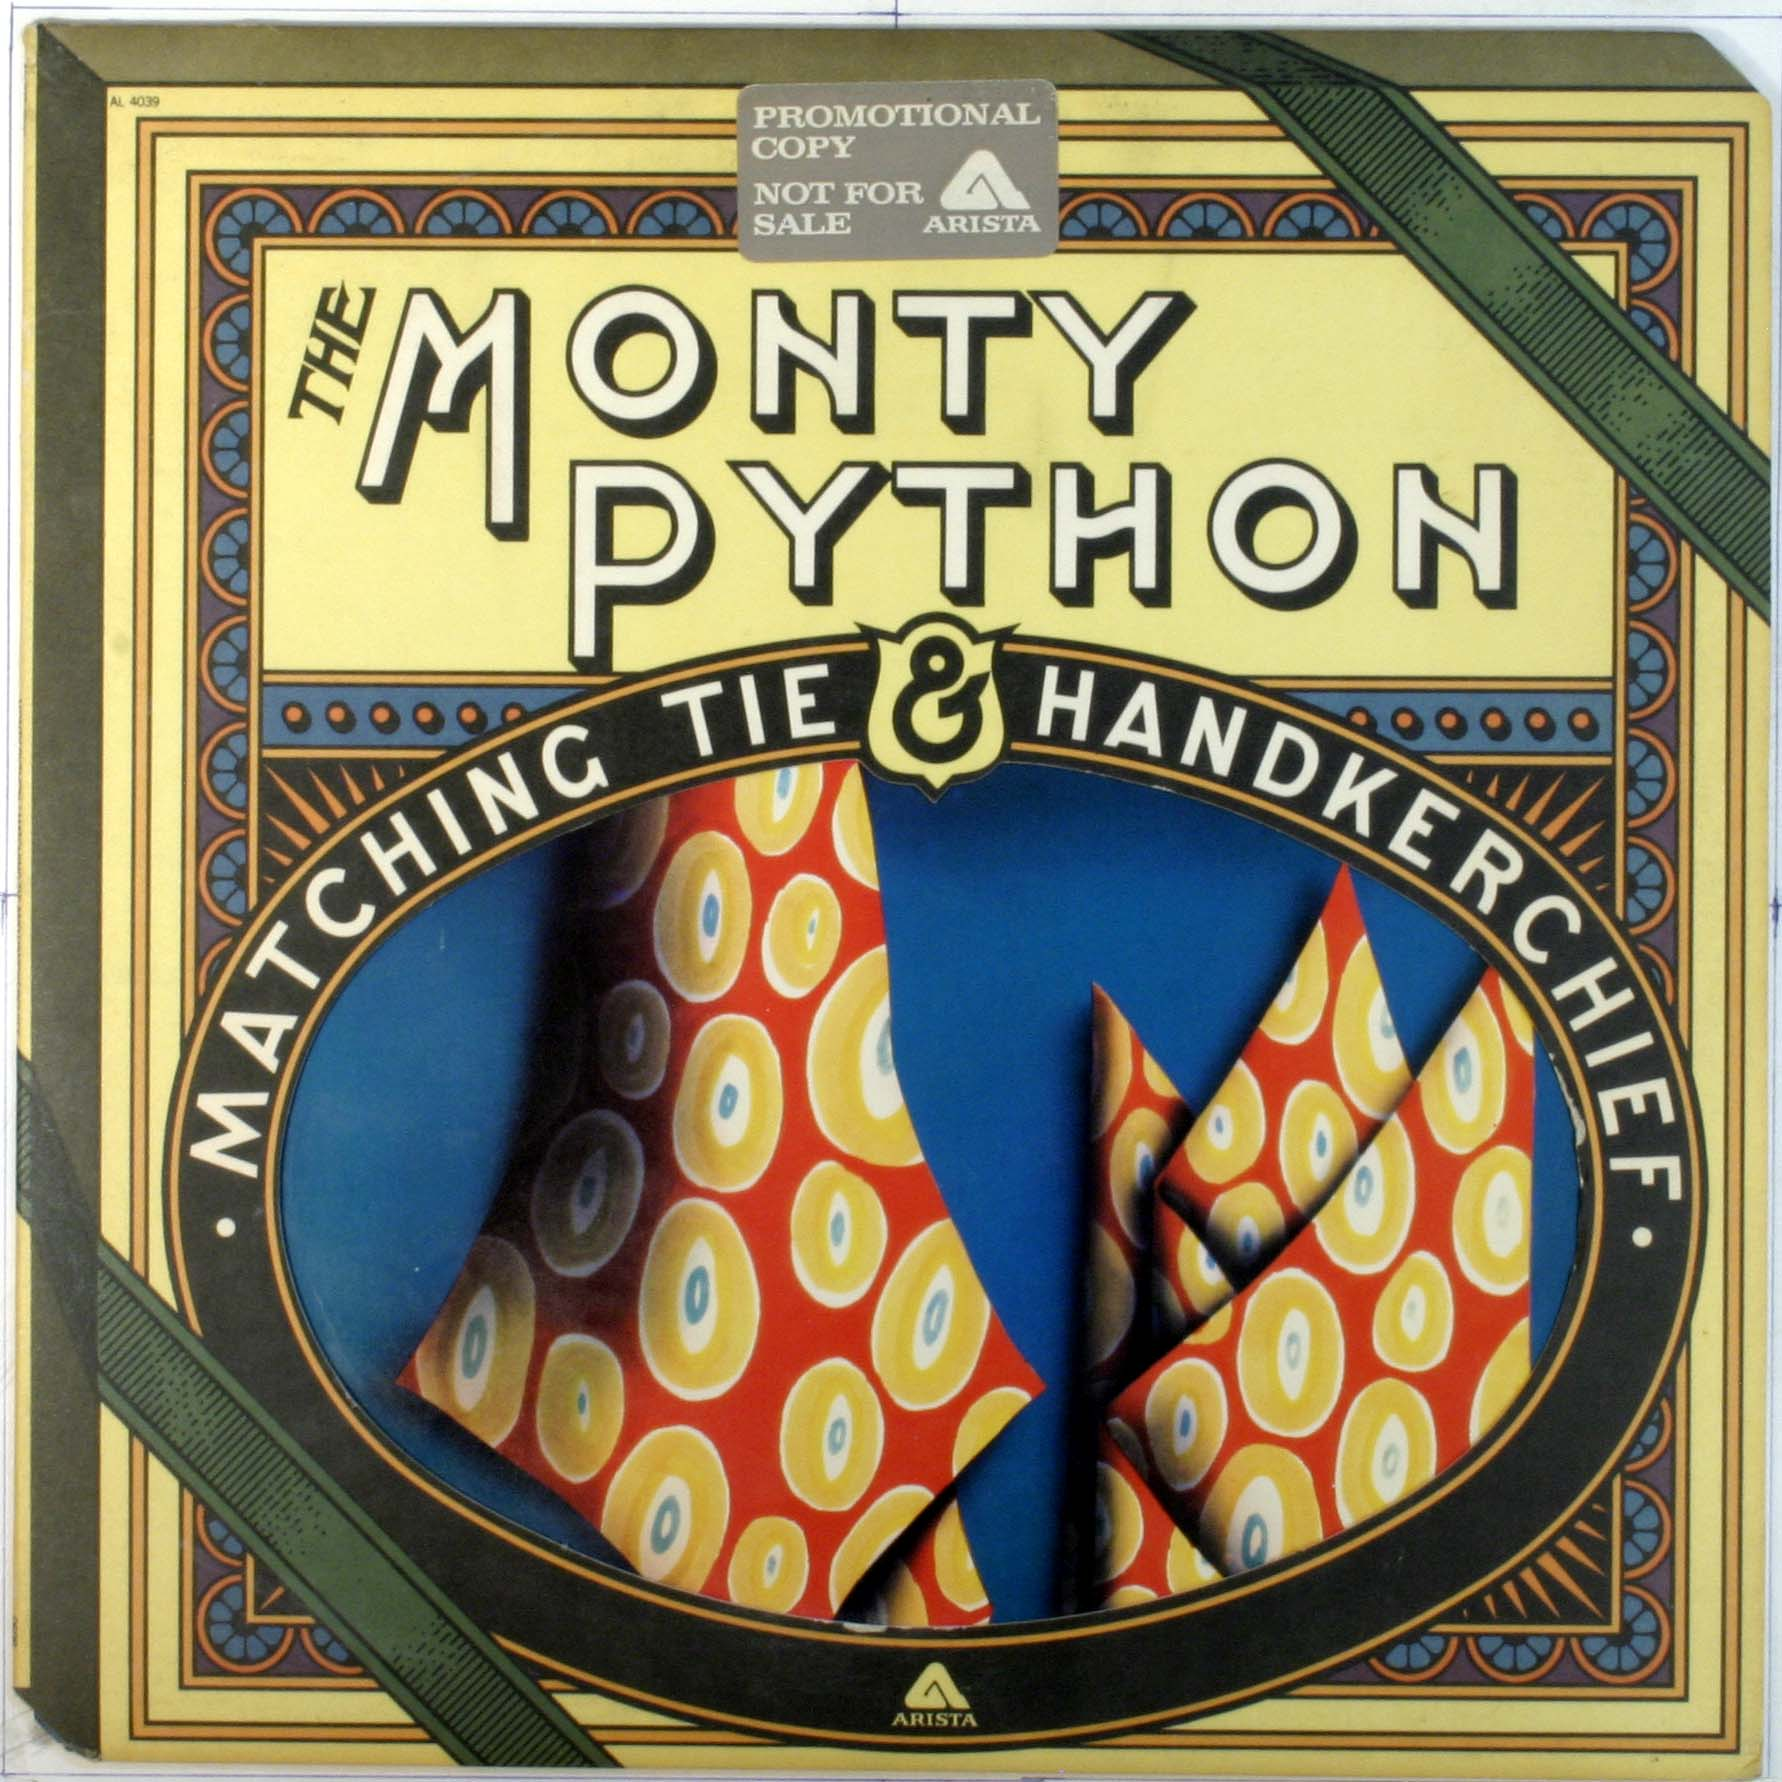 Monty Python. Where's the needle going to drop?